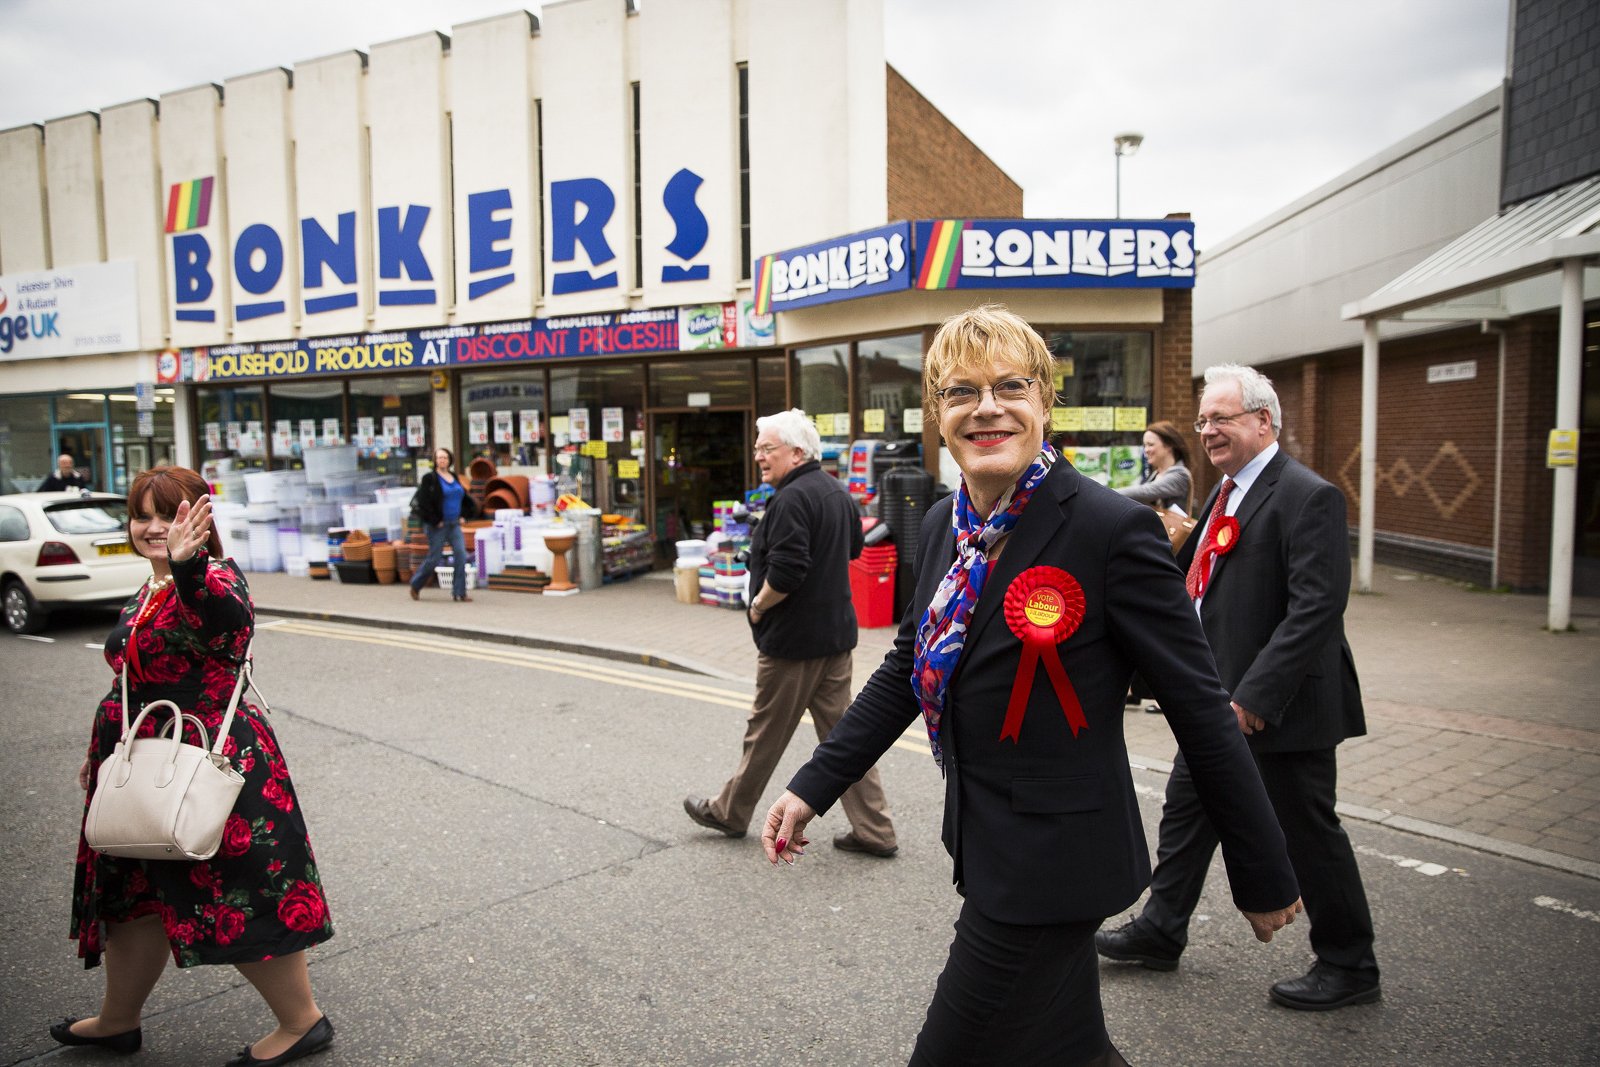 Comedian Eddie Izzard campaigning for the Labour Party in Loughborough.